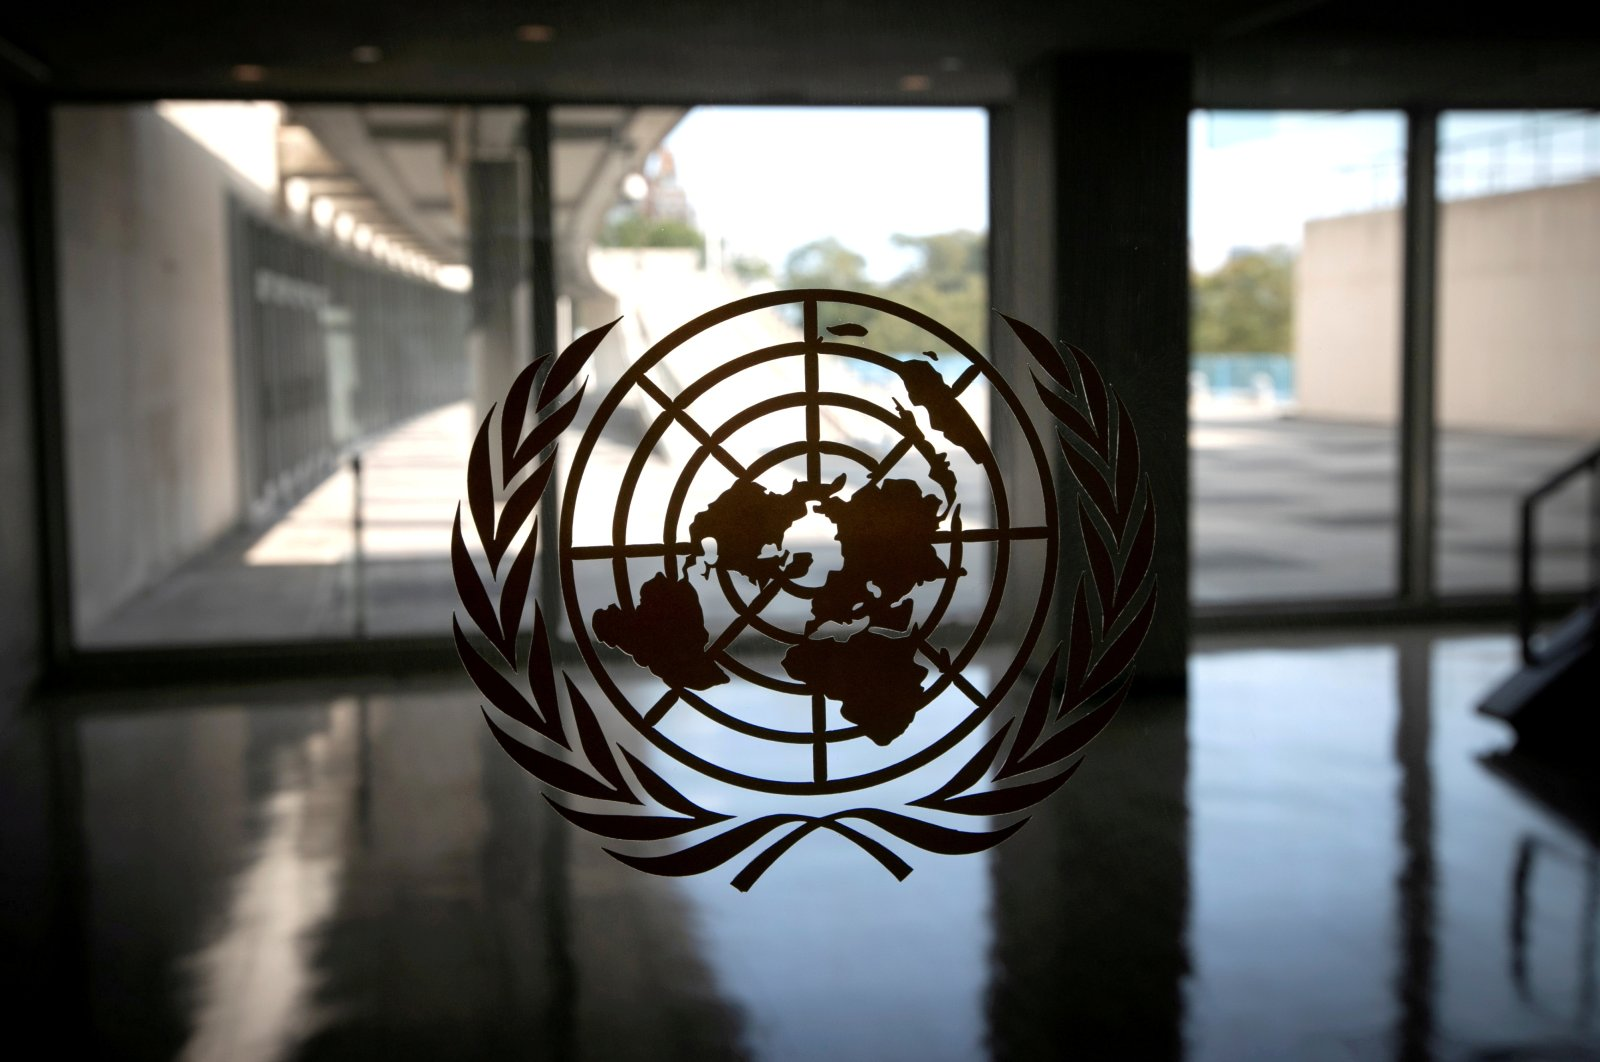 The United Nations logo is seen on a window in an empty hallway at United Nations headquarters during the 75th annual U.N. General Assembly high-level debate in New York, U.S., Sept. 21, 2020. (Reuters Photo)